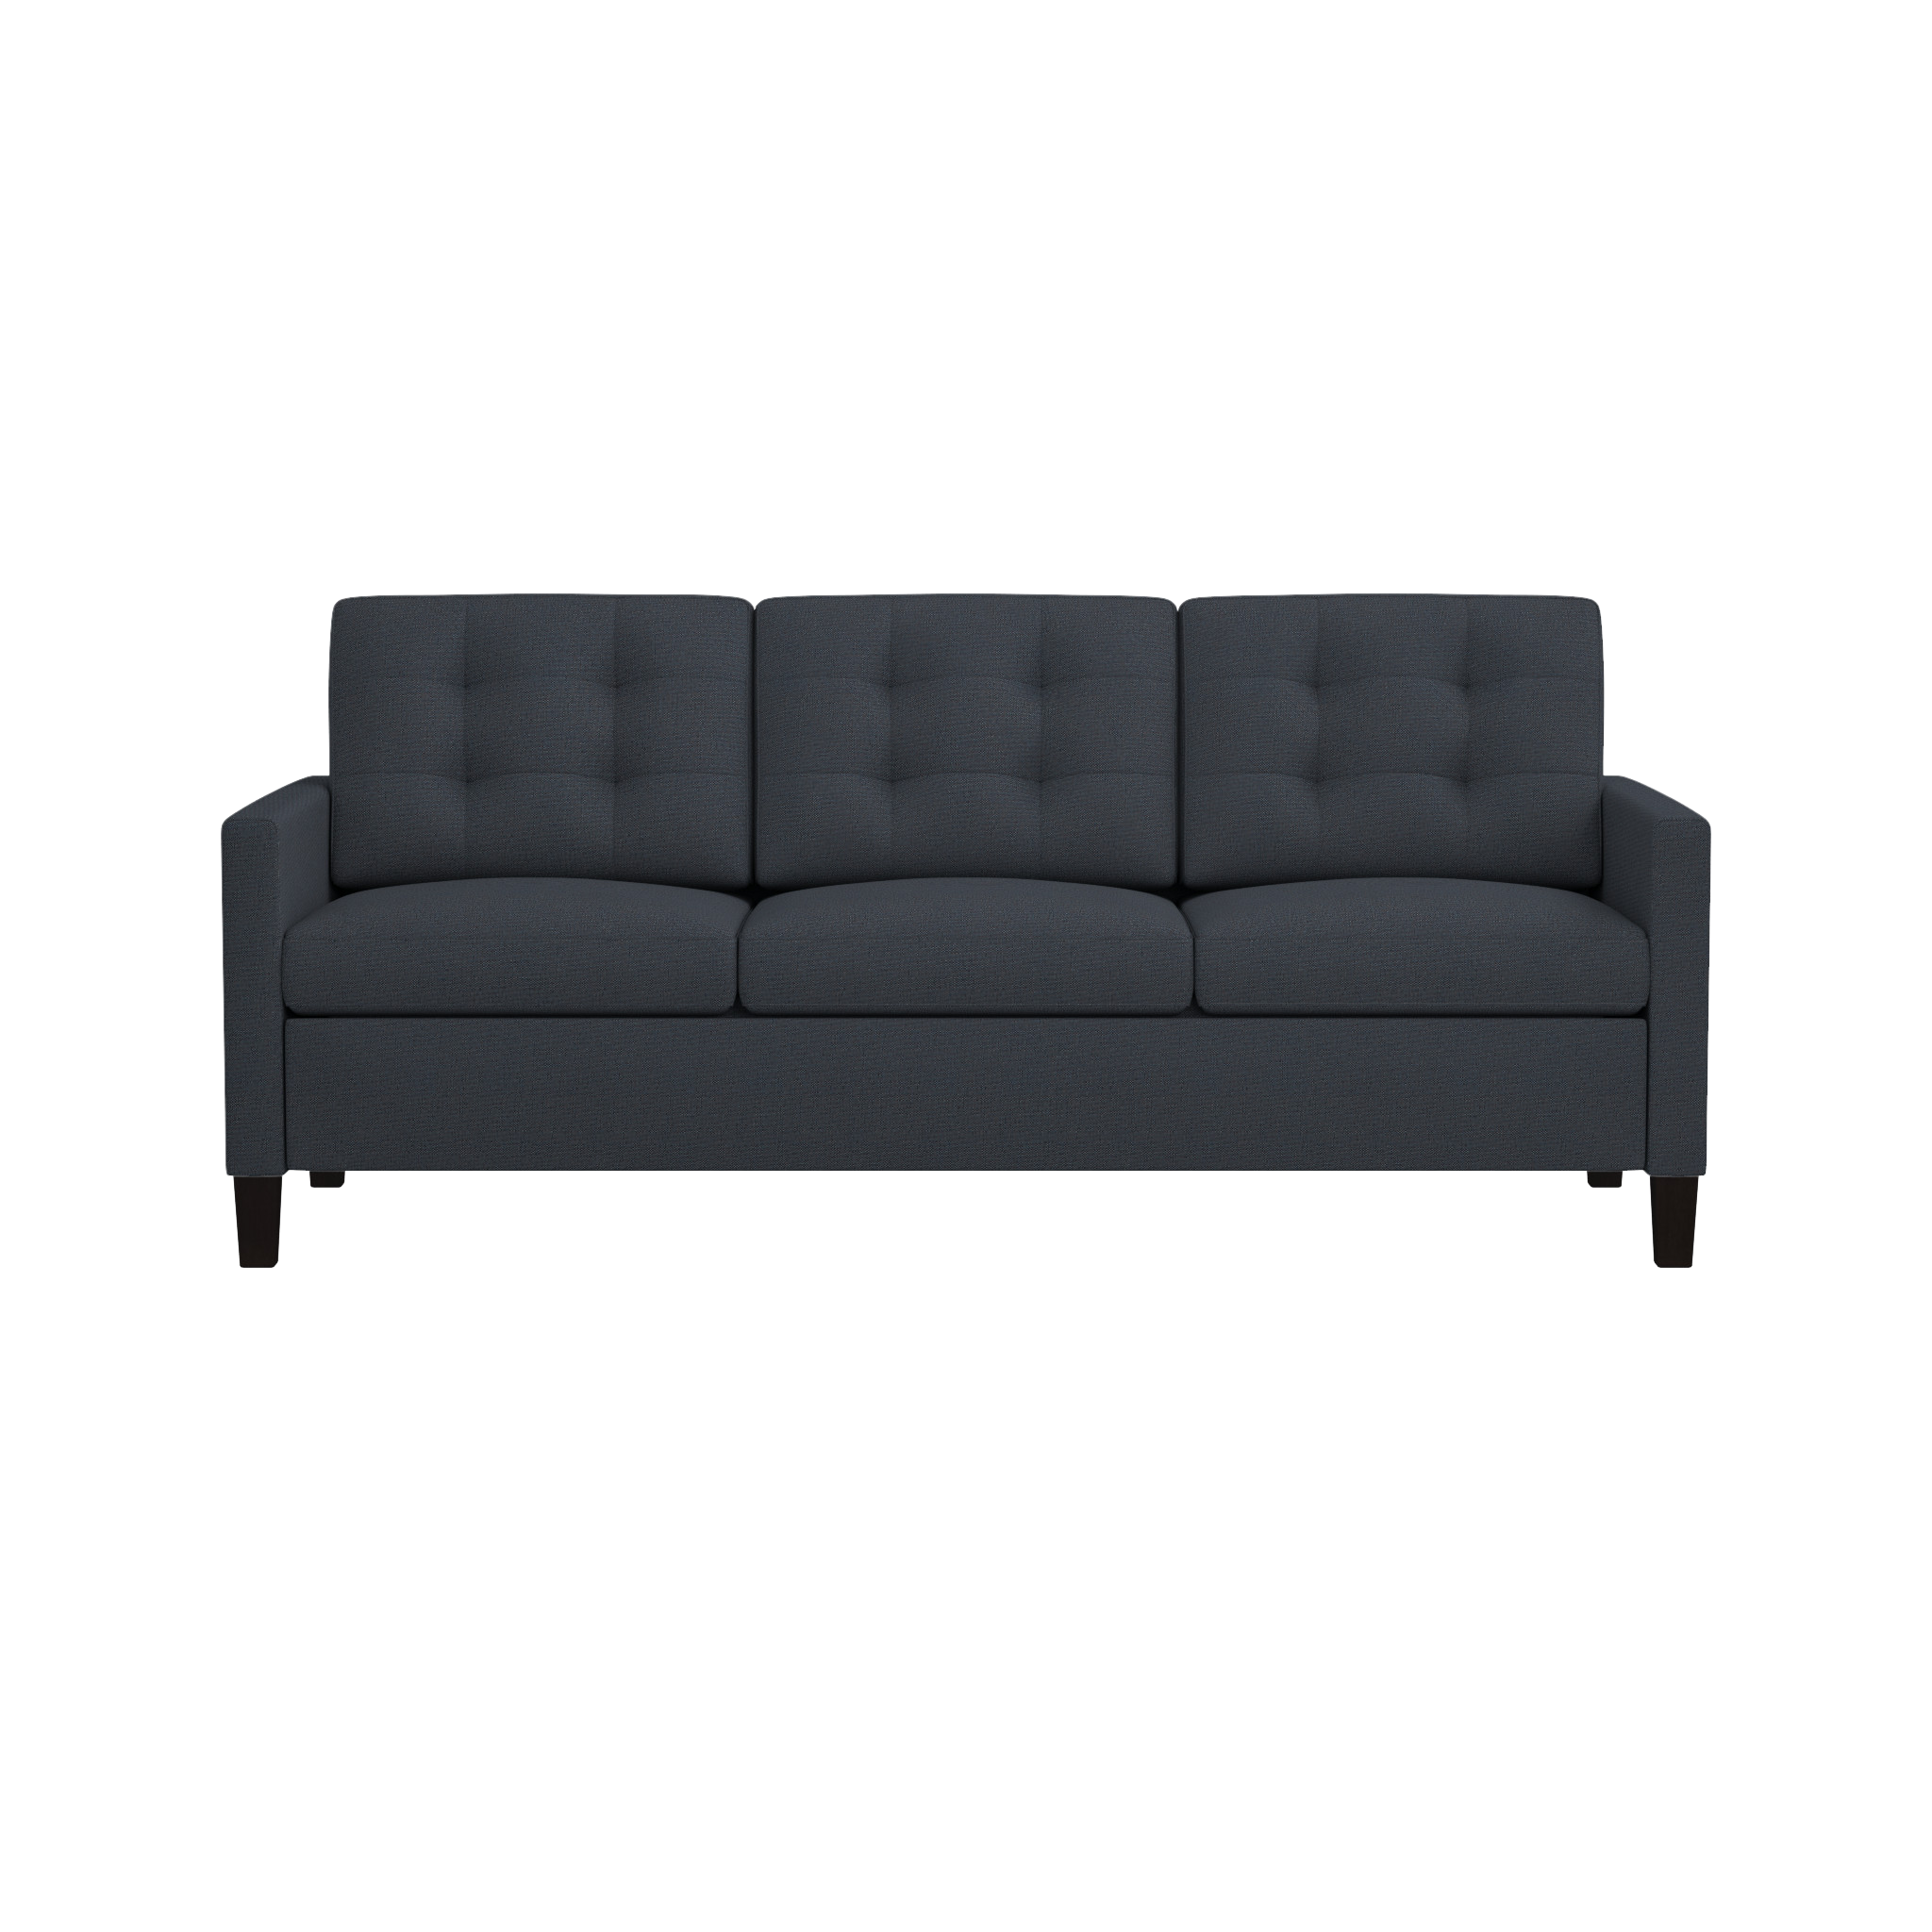 Karnes King Sleeper Sofa Truly A And Bed Is The Gold Standard In Sleepers With Luxurious Size Four Inch Thick Foam